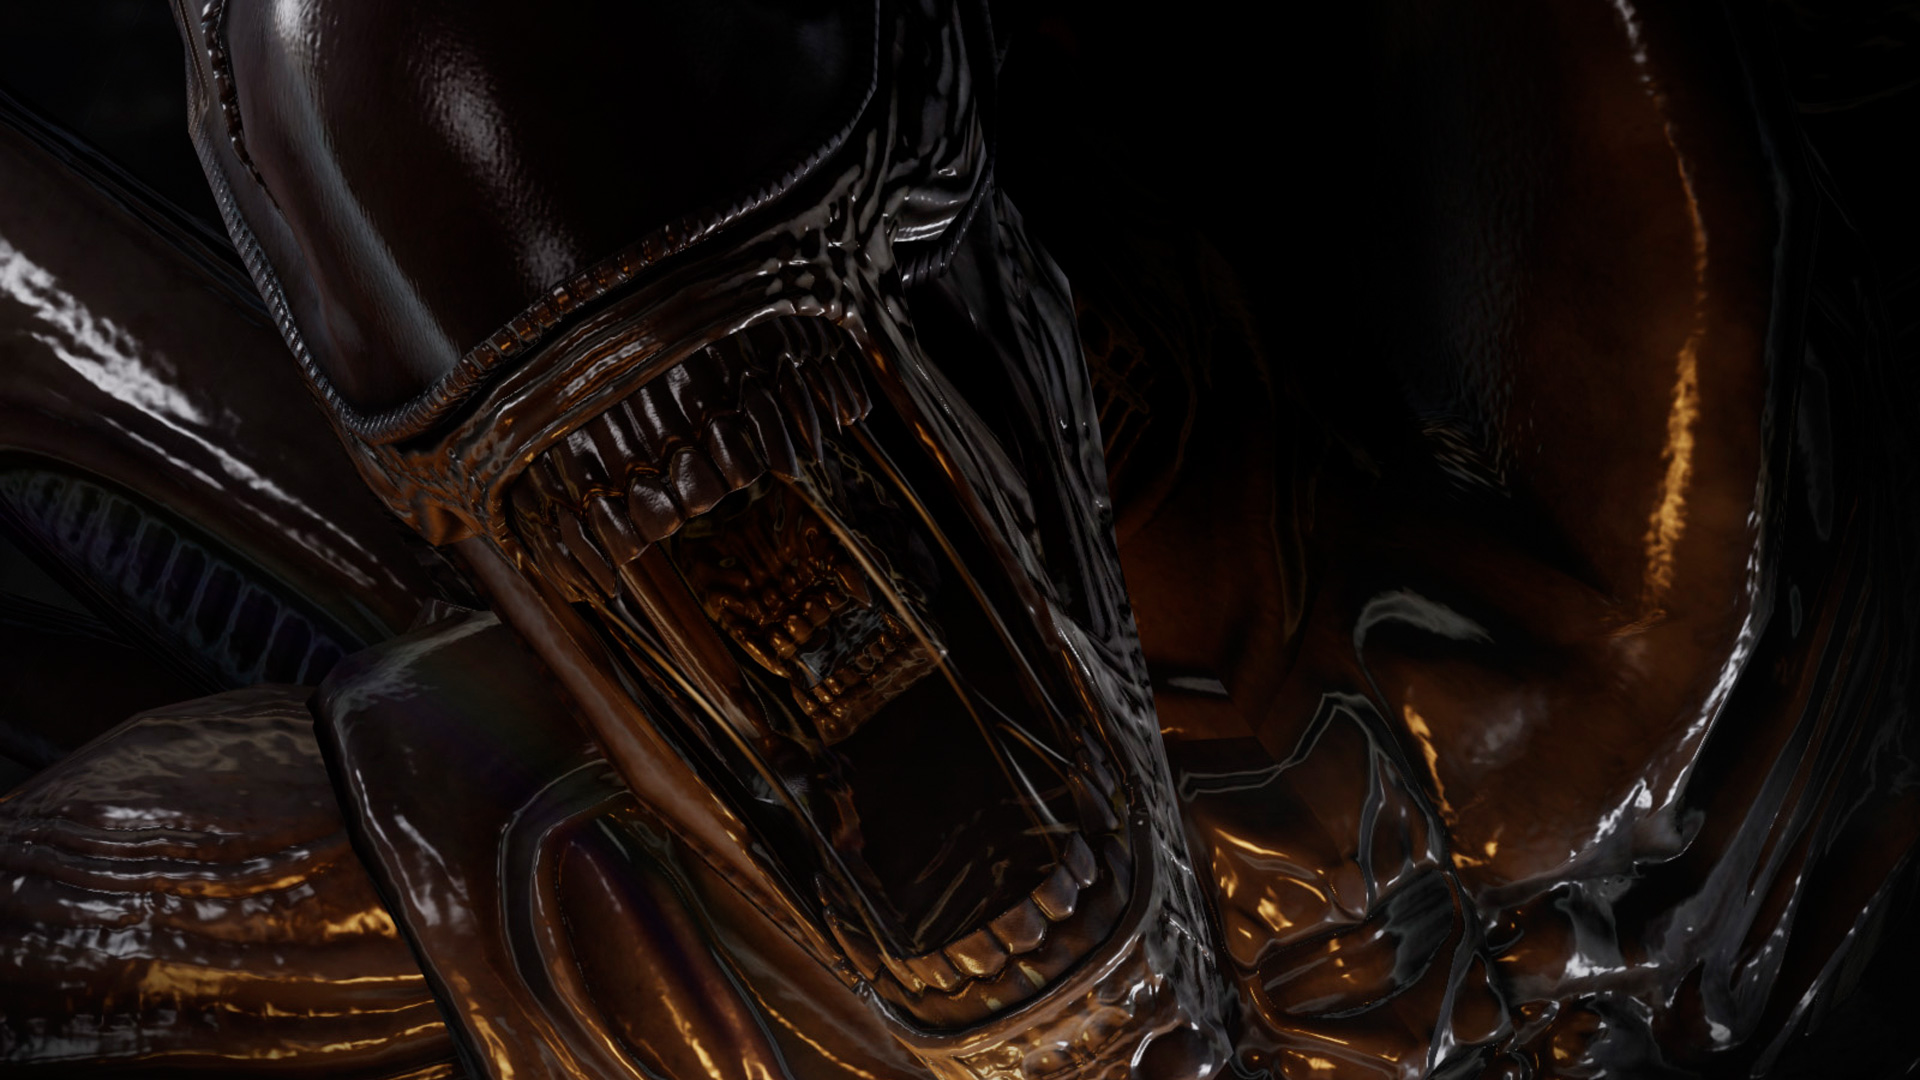 Aliens vs Predator Wallpaper in 1920x1080